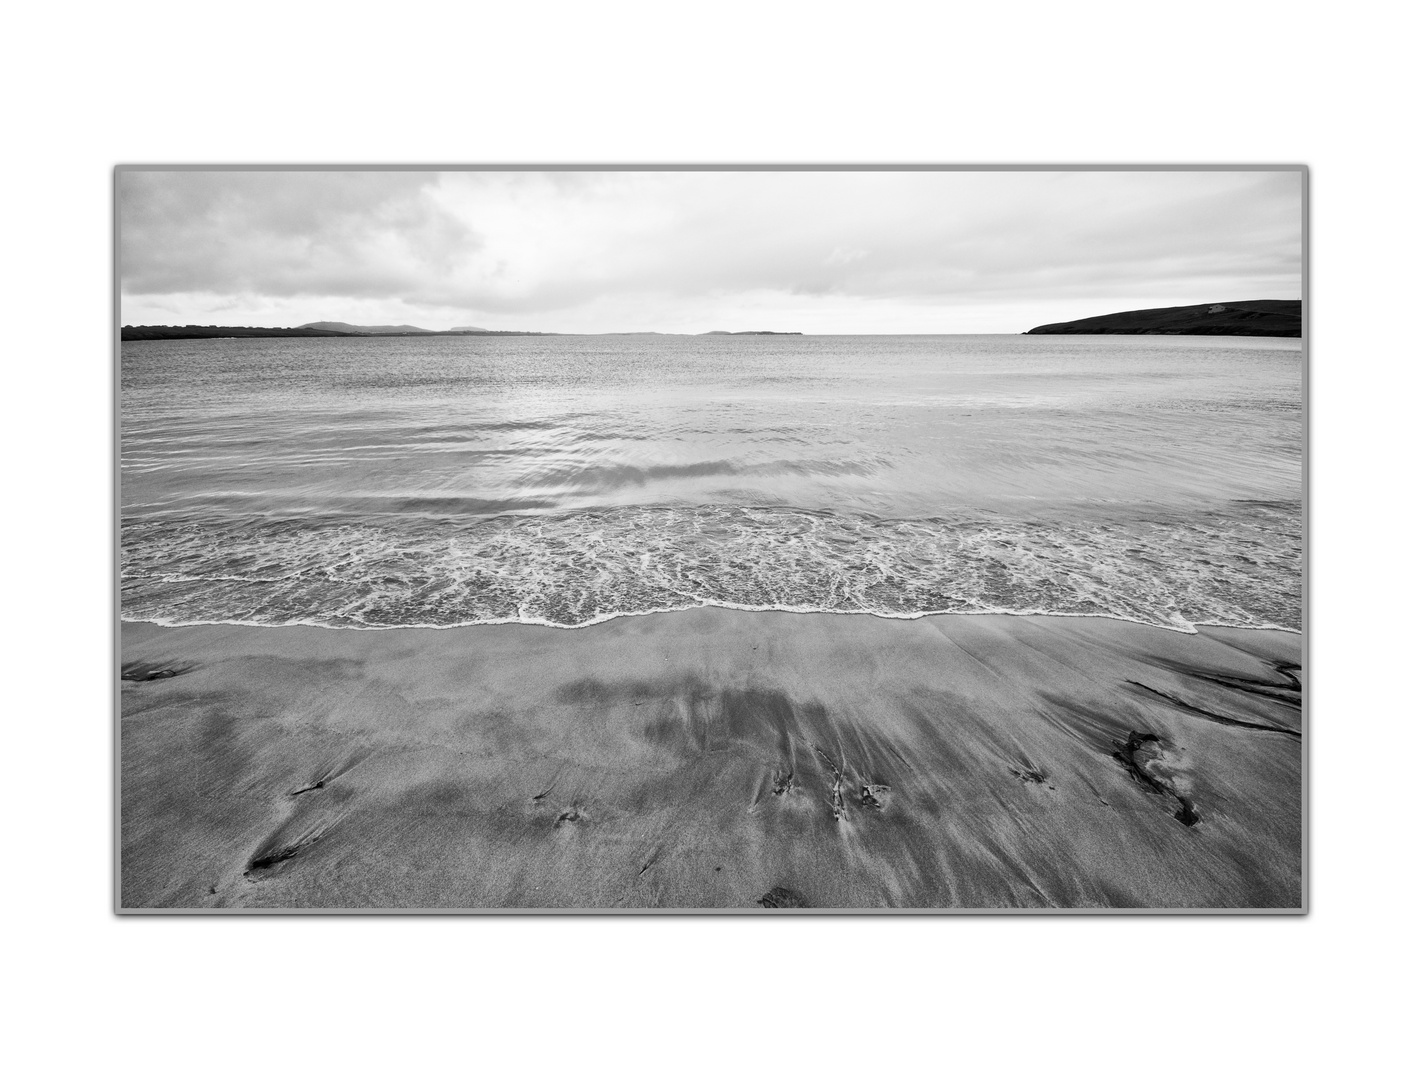 Bay of Quendale